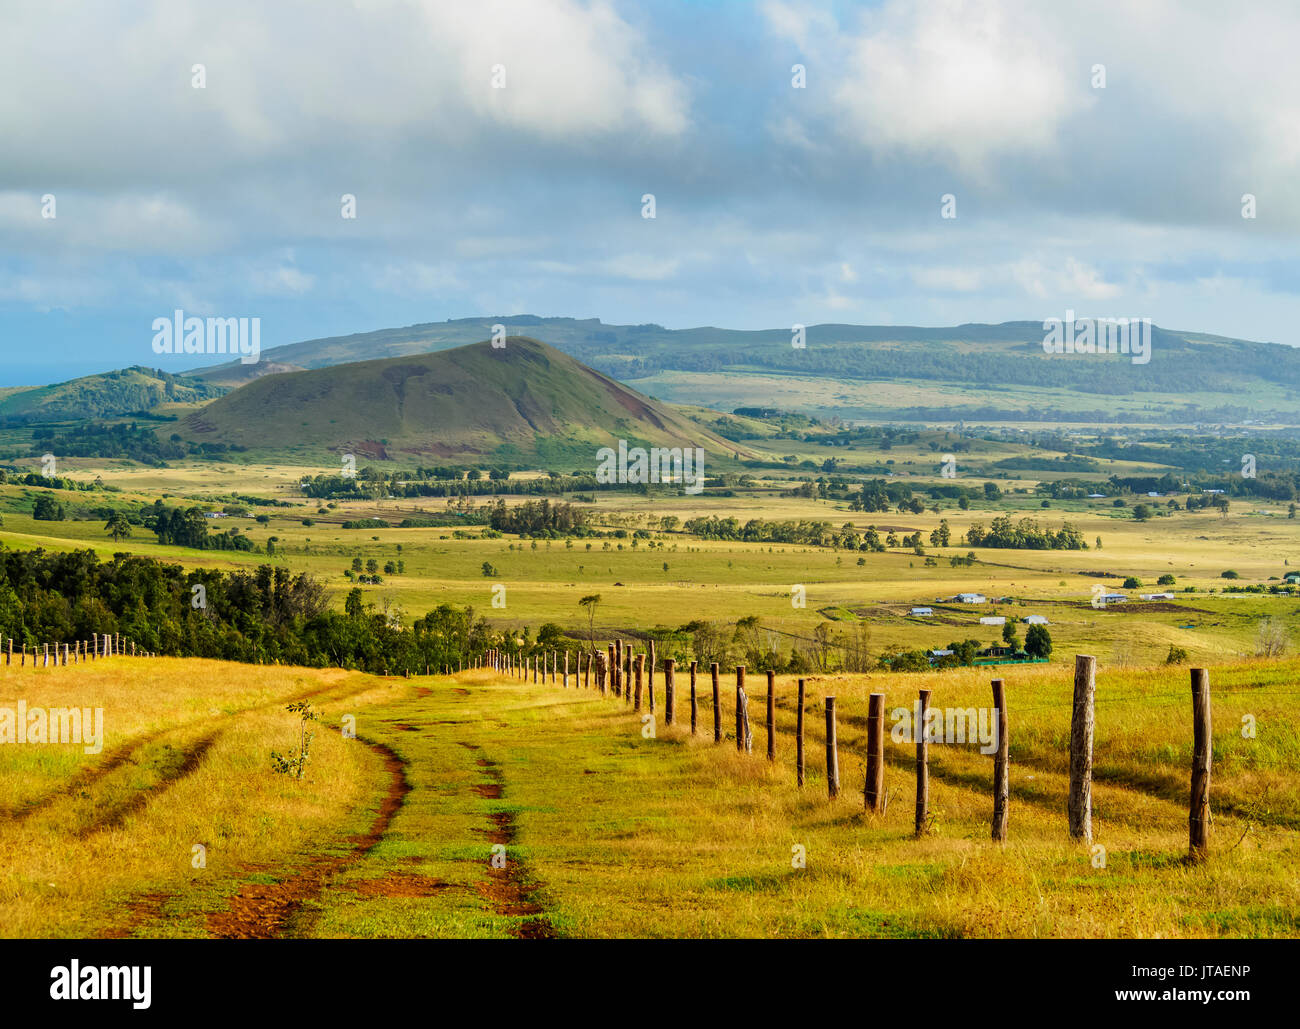 Landscape of the island seen from the way up to the Maunga Terevaka, Easter Island, Chile - Stock Image